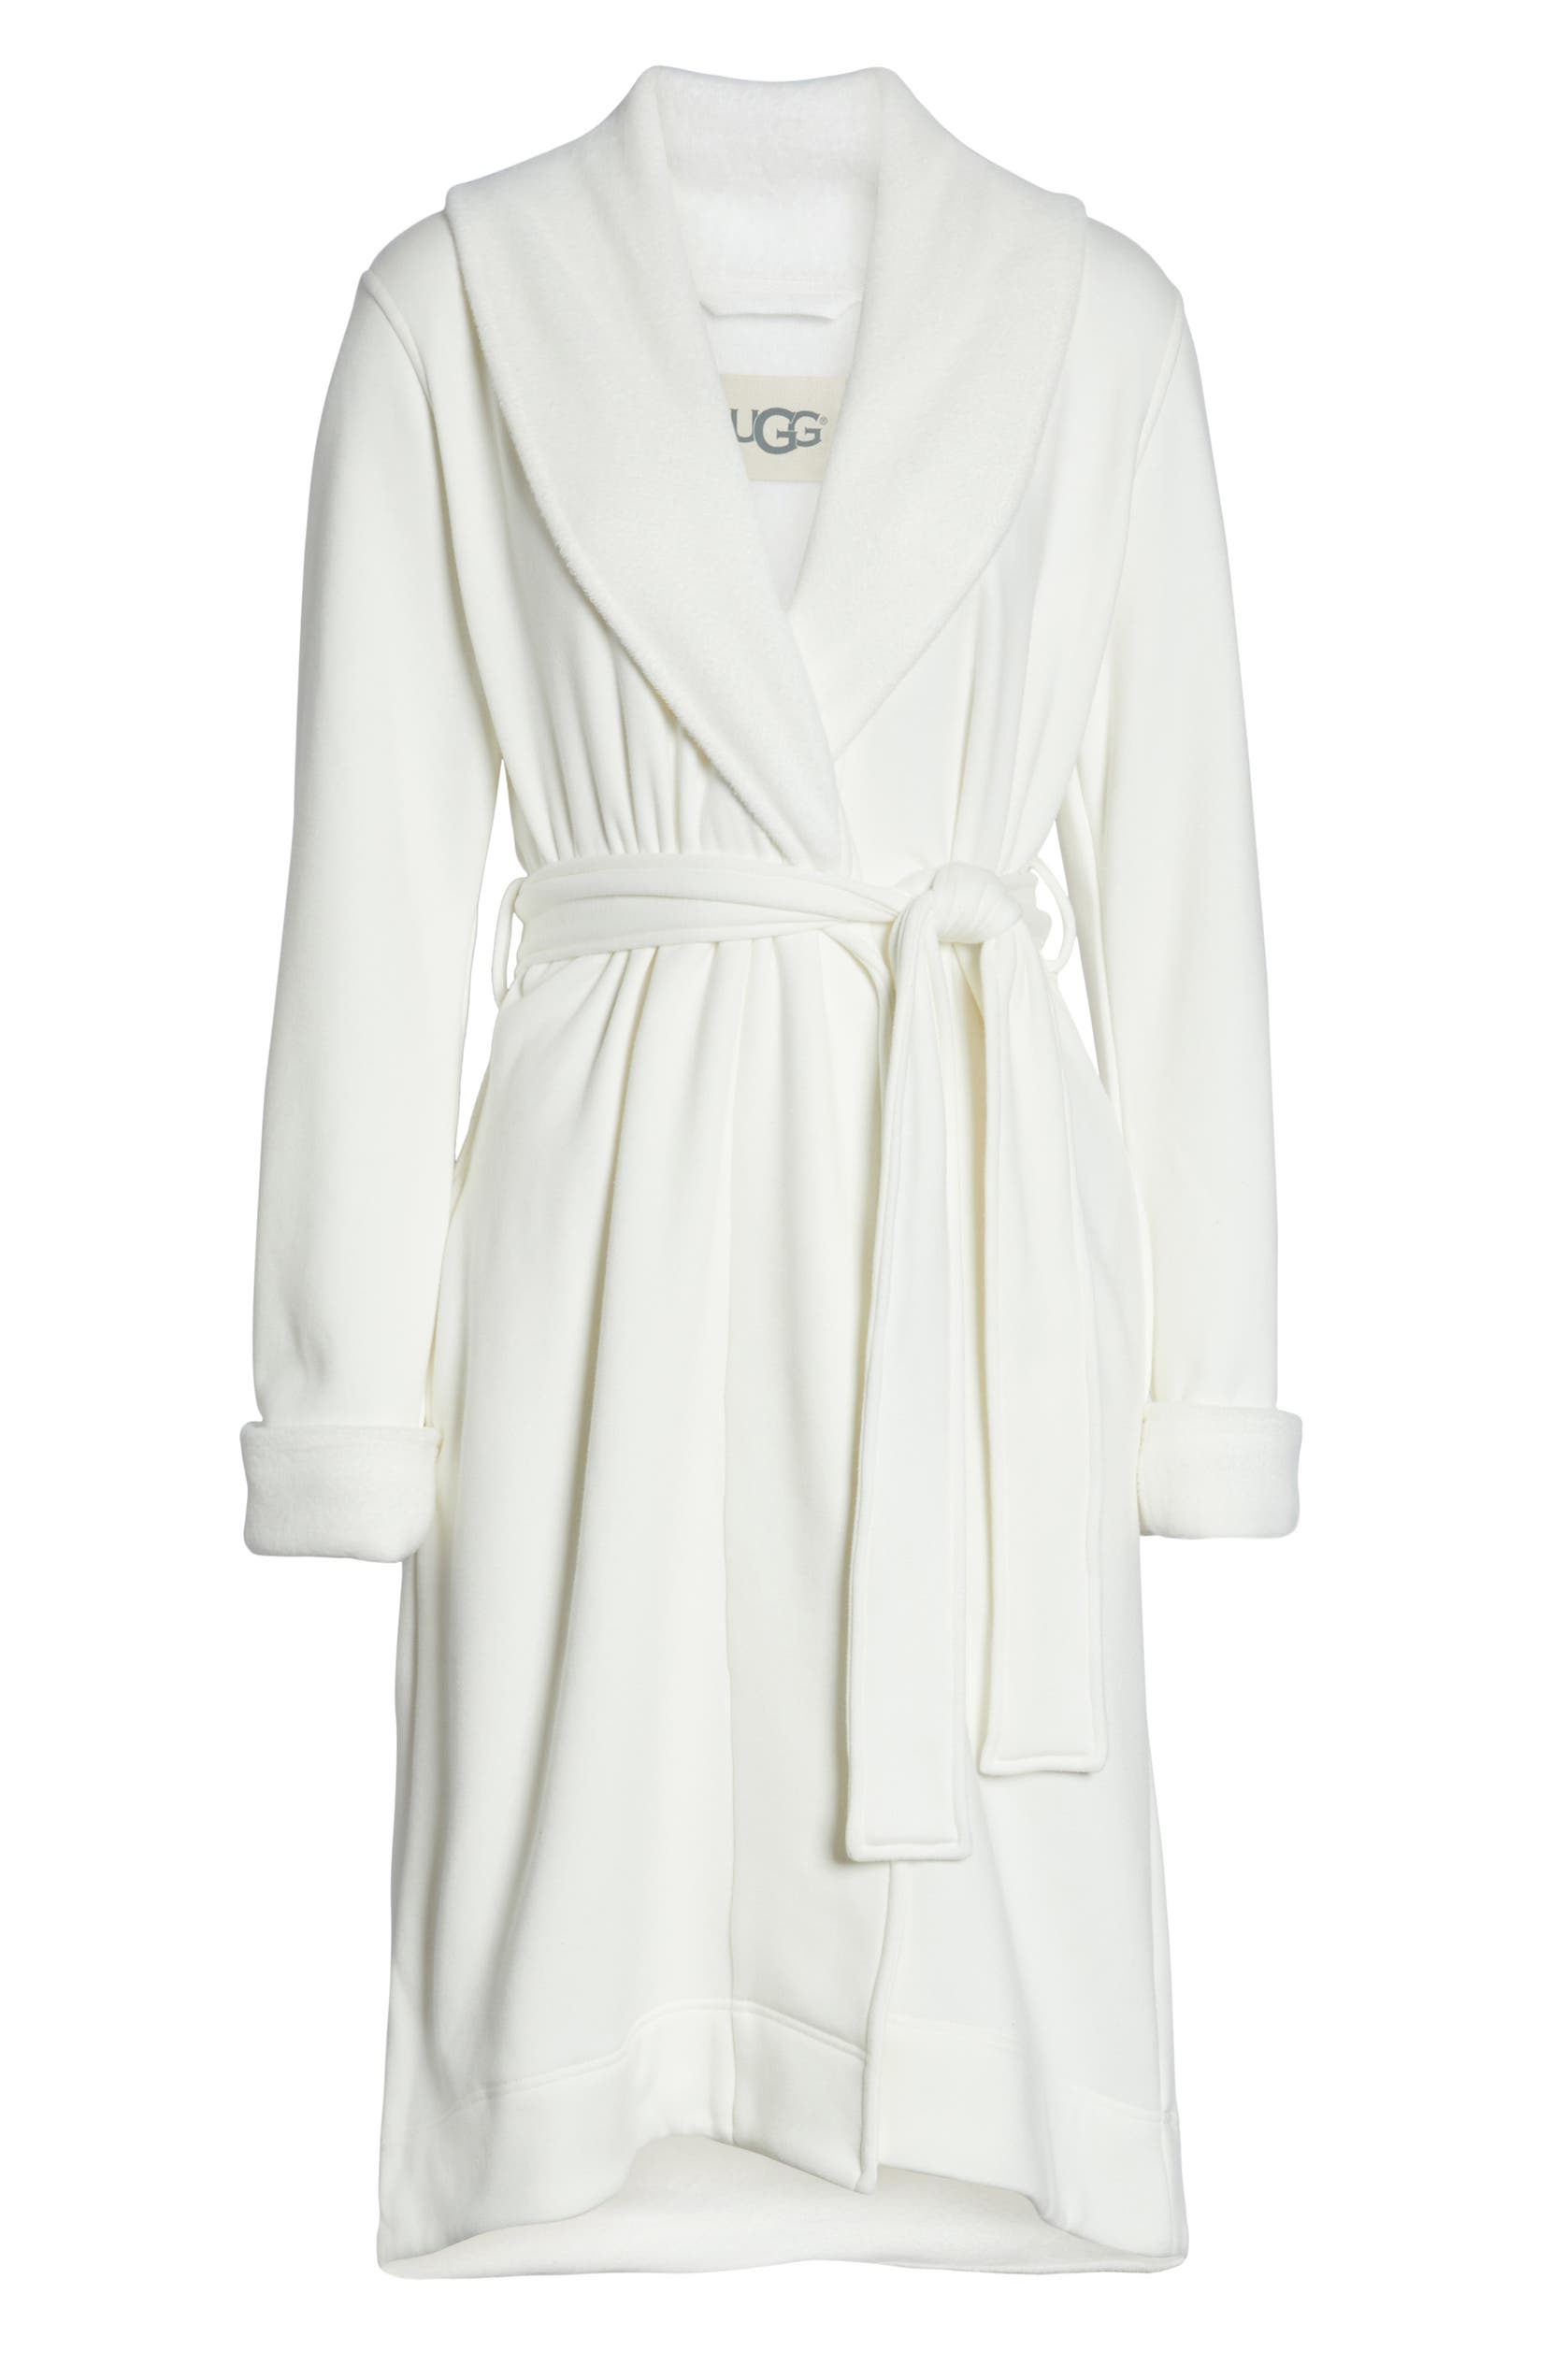 7df4292636 UGG® Duffield II Robe